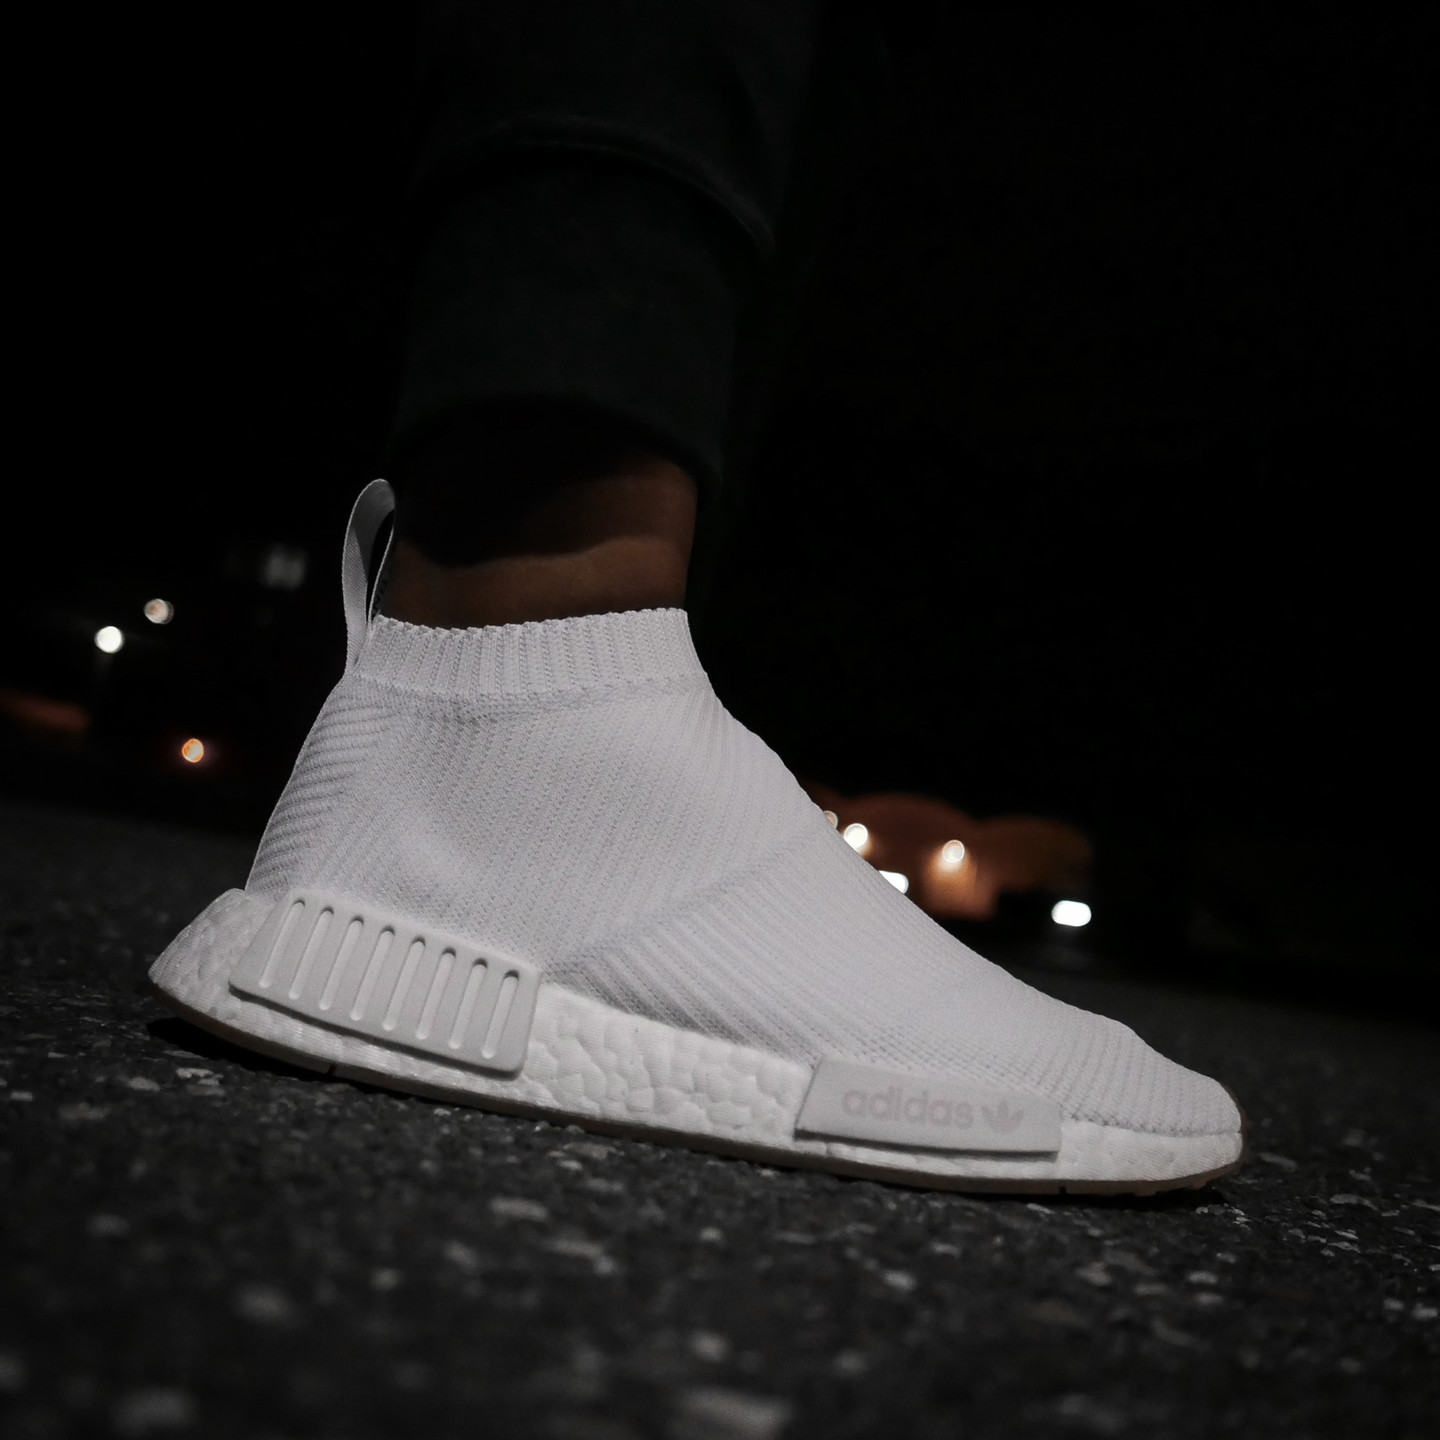 Adidas NMD CS1 City Sock Boost Primeknit Running White / Gum BA7208-39.33